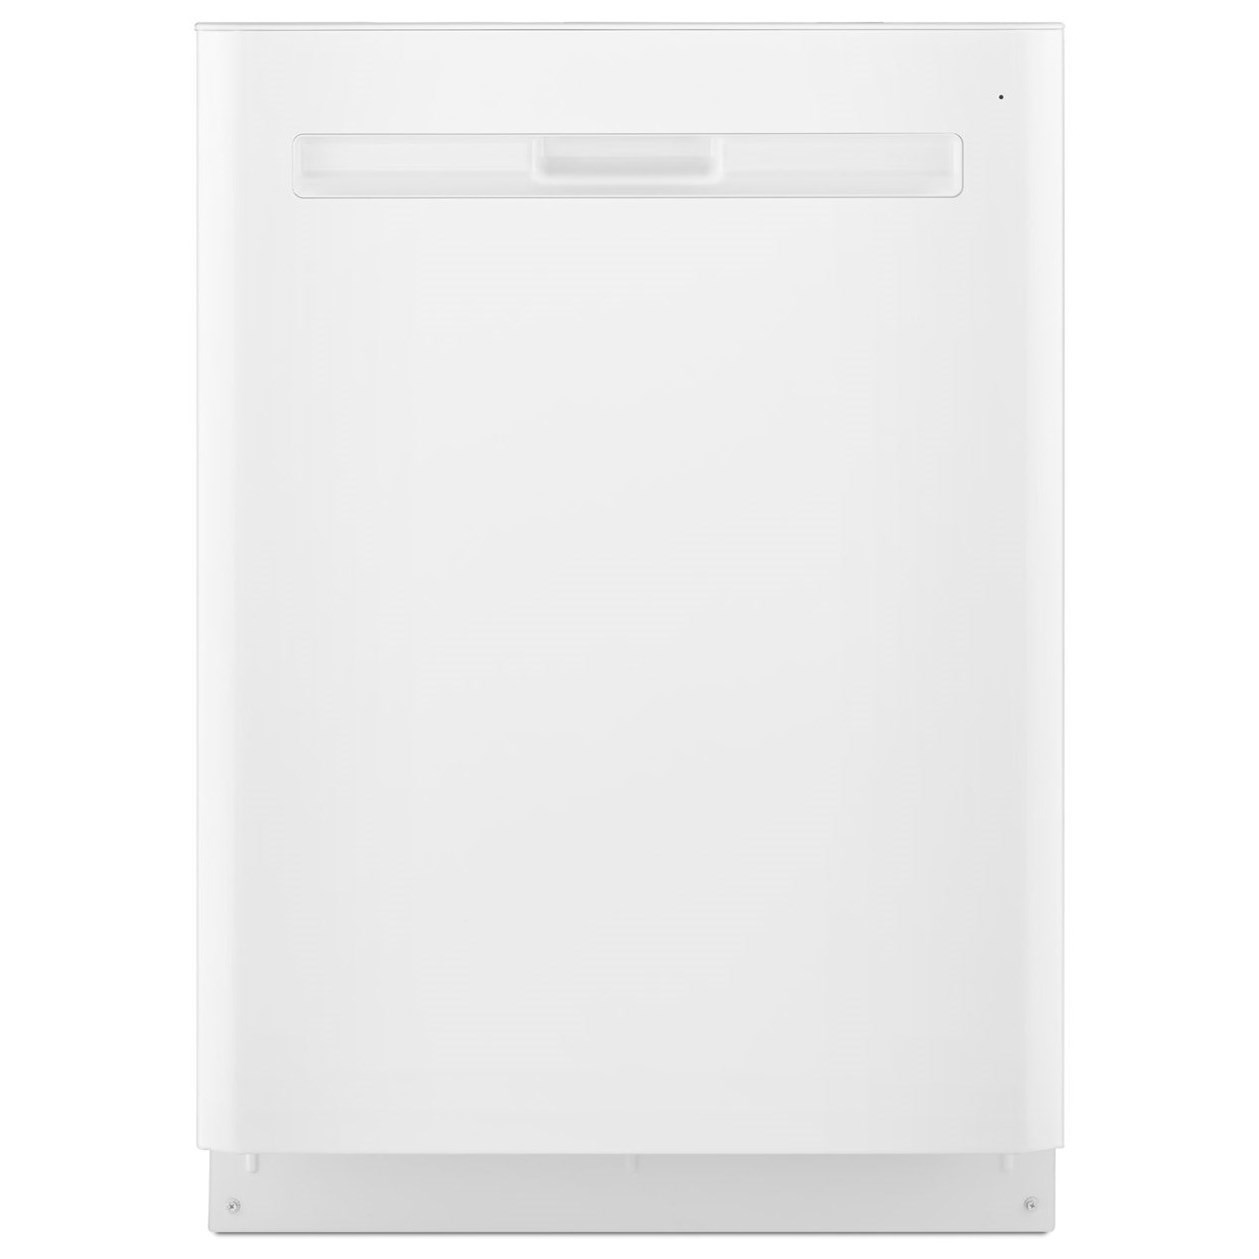 24- Inch Wide Top Control Dish Washer